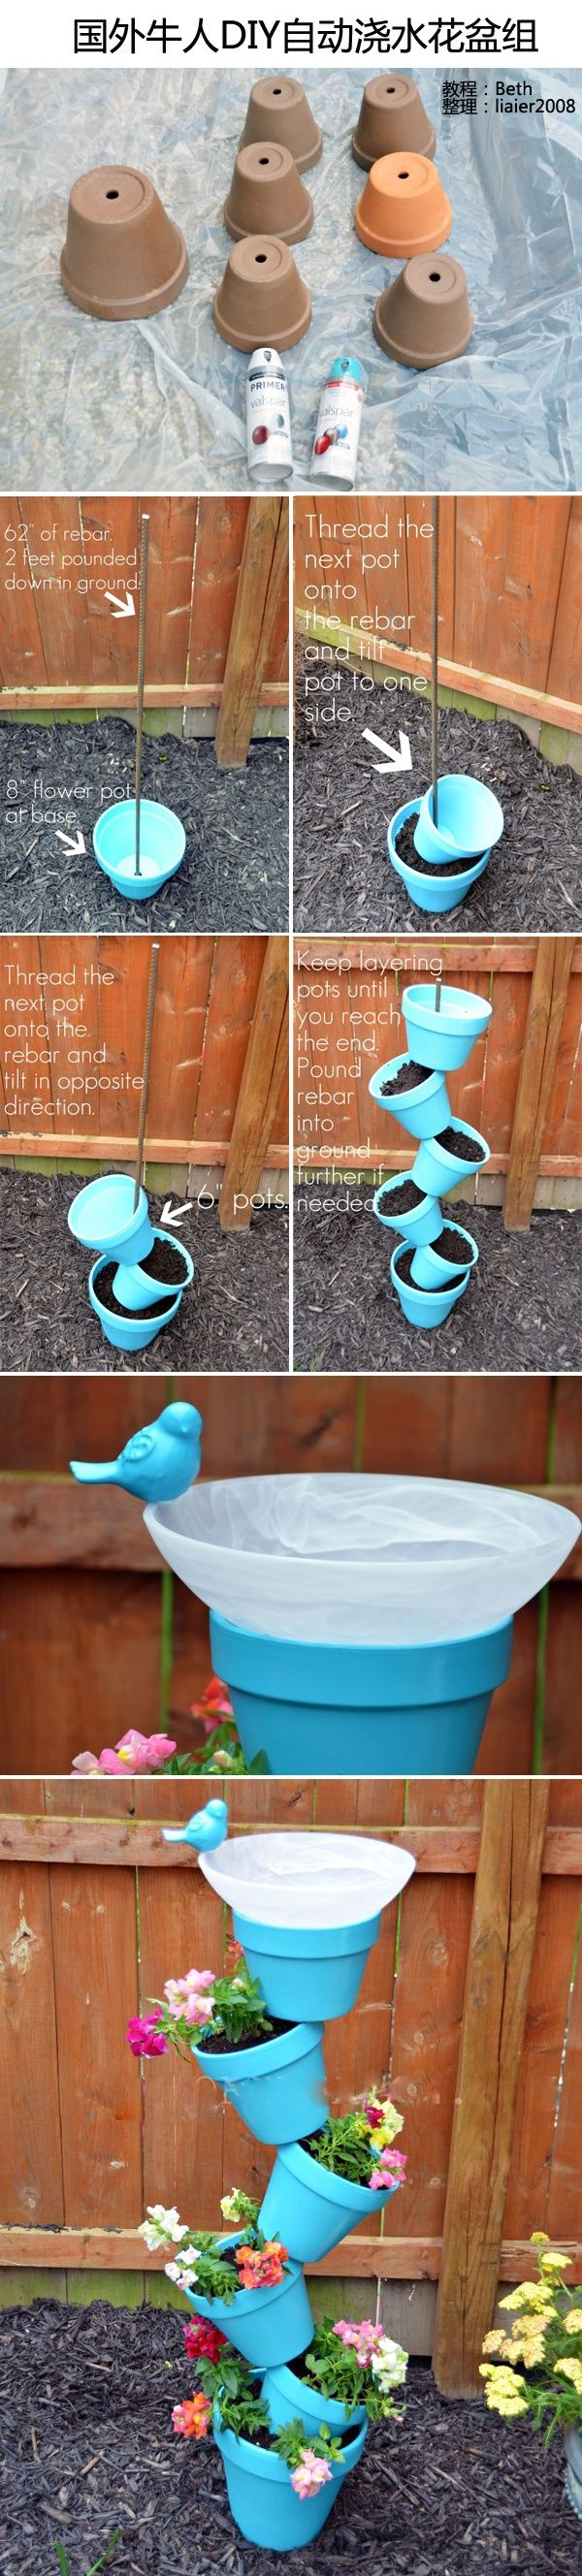 Make Your Own Flower Pot Tower